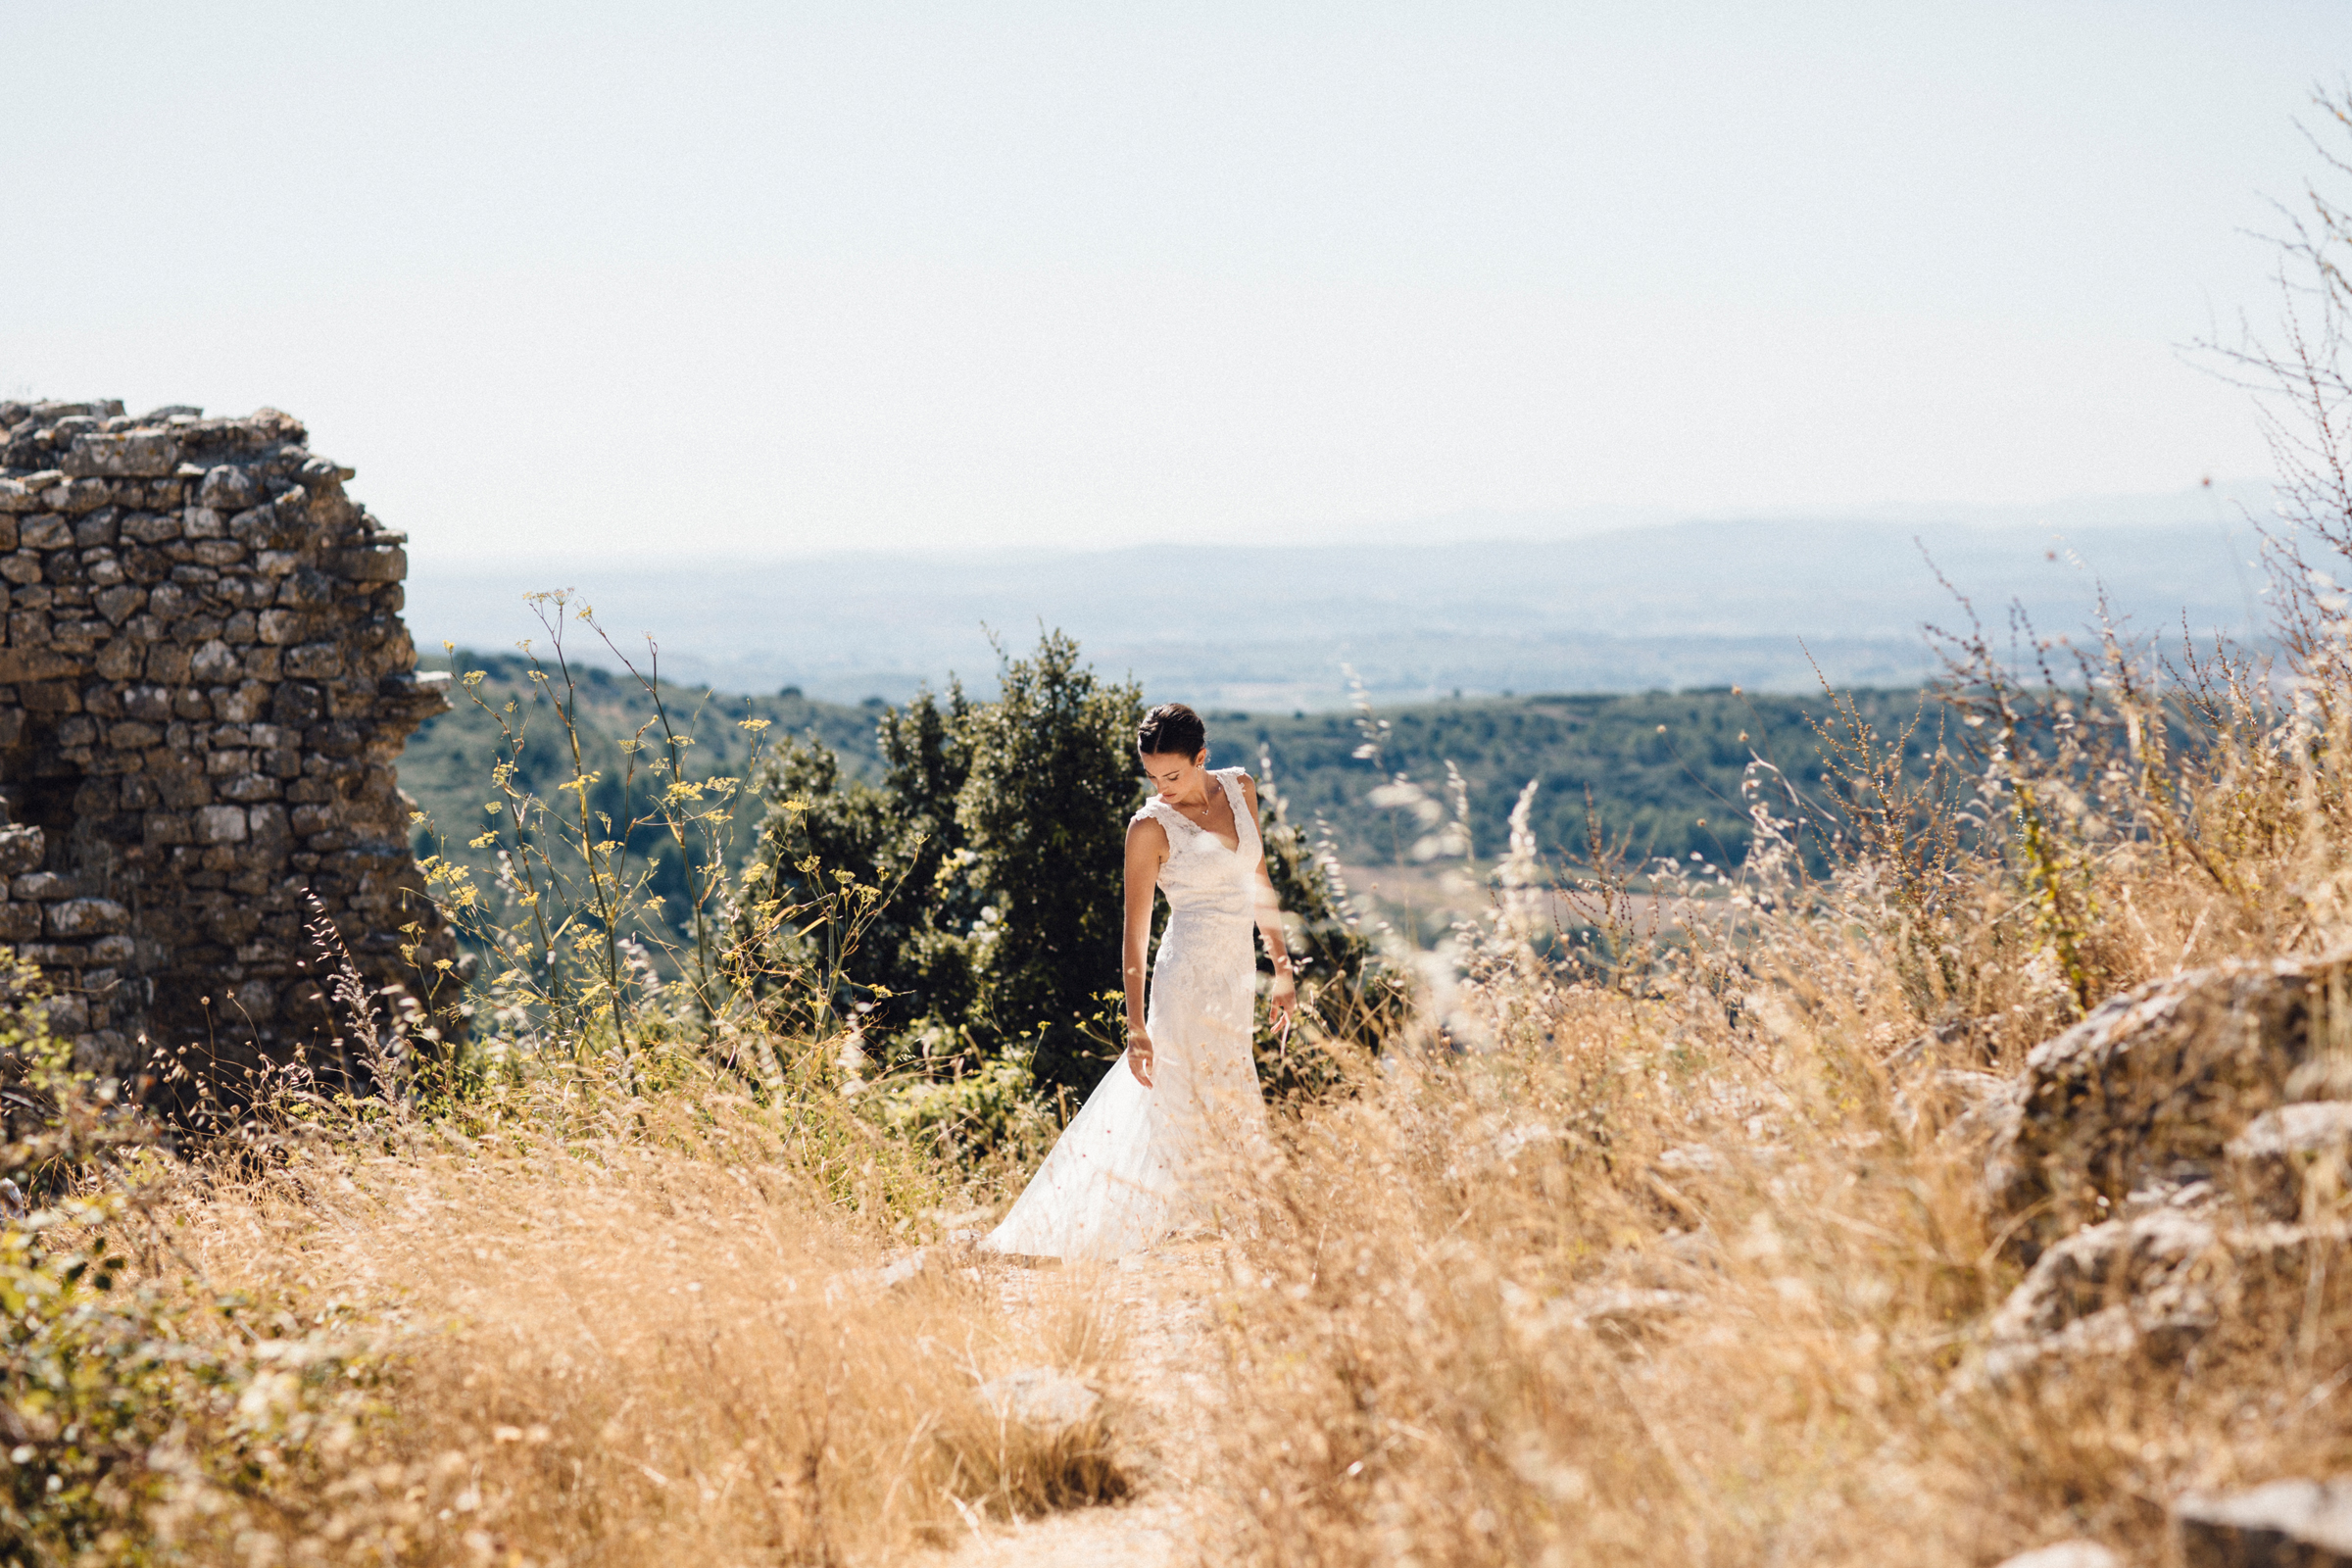 wedding, france wedding, bhldn, chateau, paperbird, paperbird photography, wedding dress